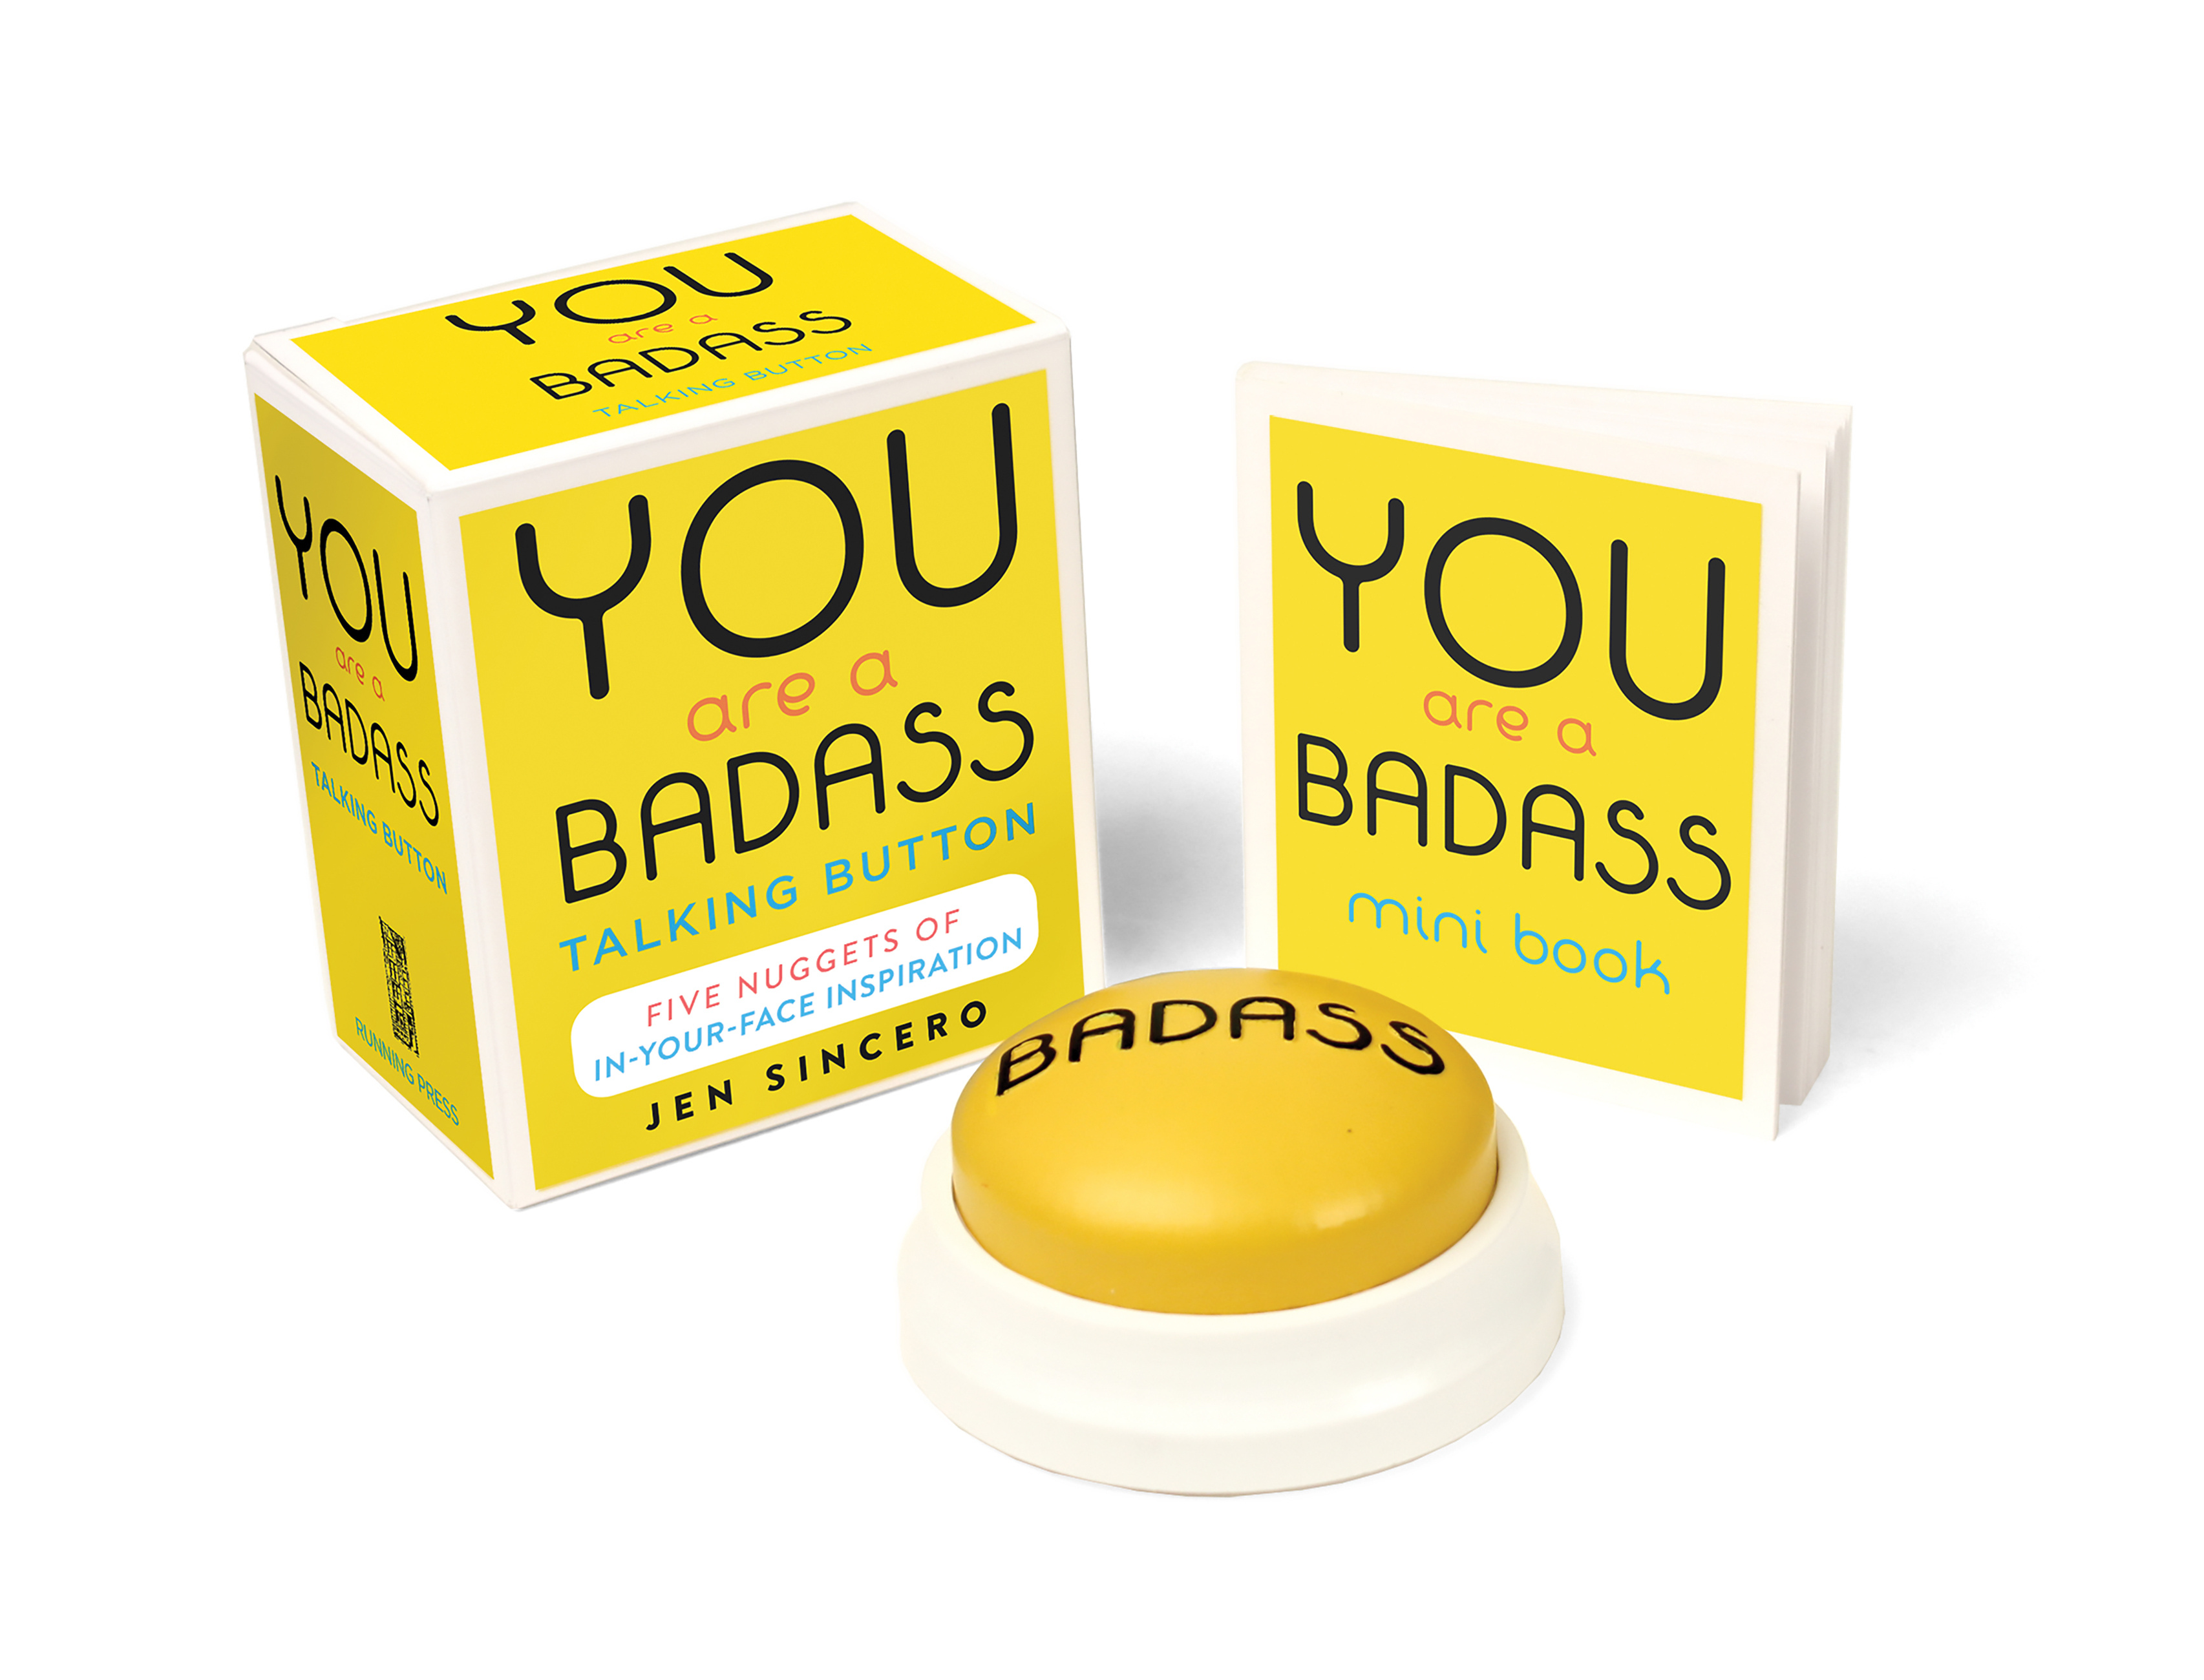 You Are a Badass Talking ButtonFive Reminders to Be Awesome